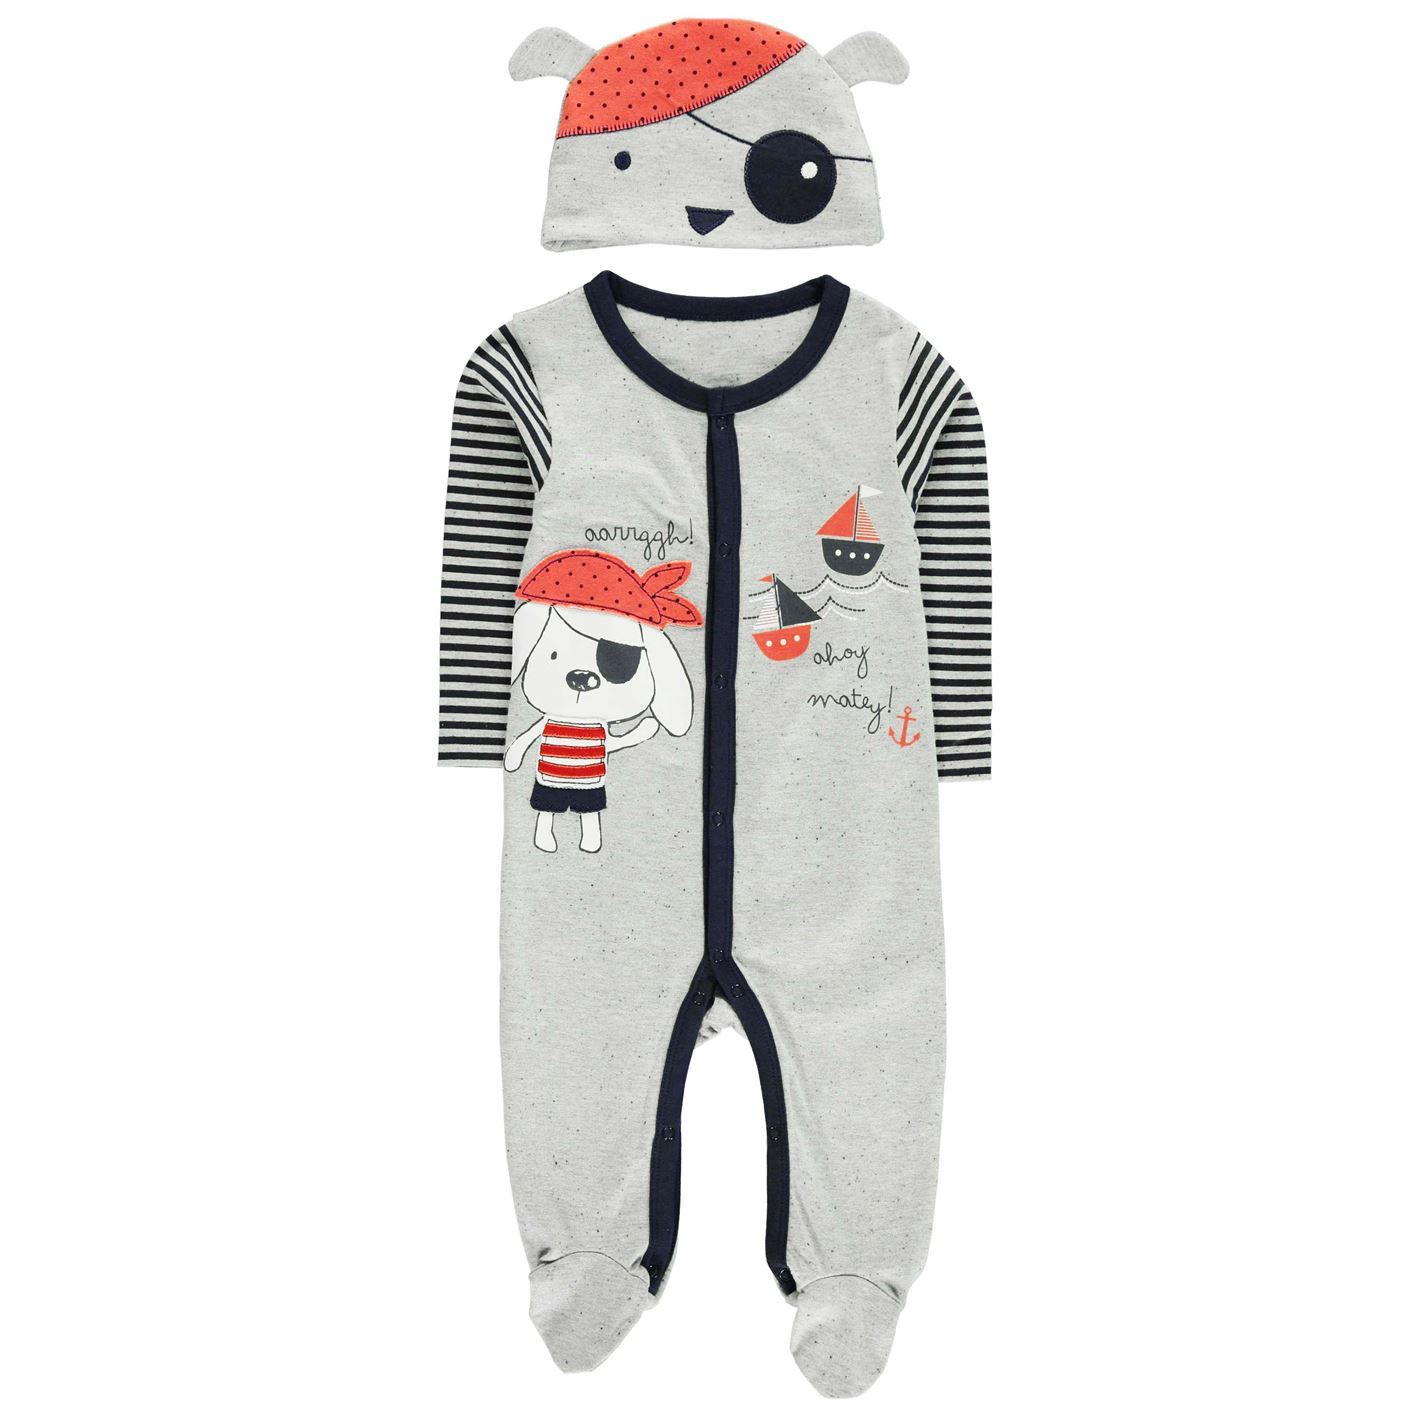 Crafted-Kids-2-Pack-Jersey-Set-Baby-Sleep-Suit-Hat-Full-Length-Legs-Top